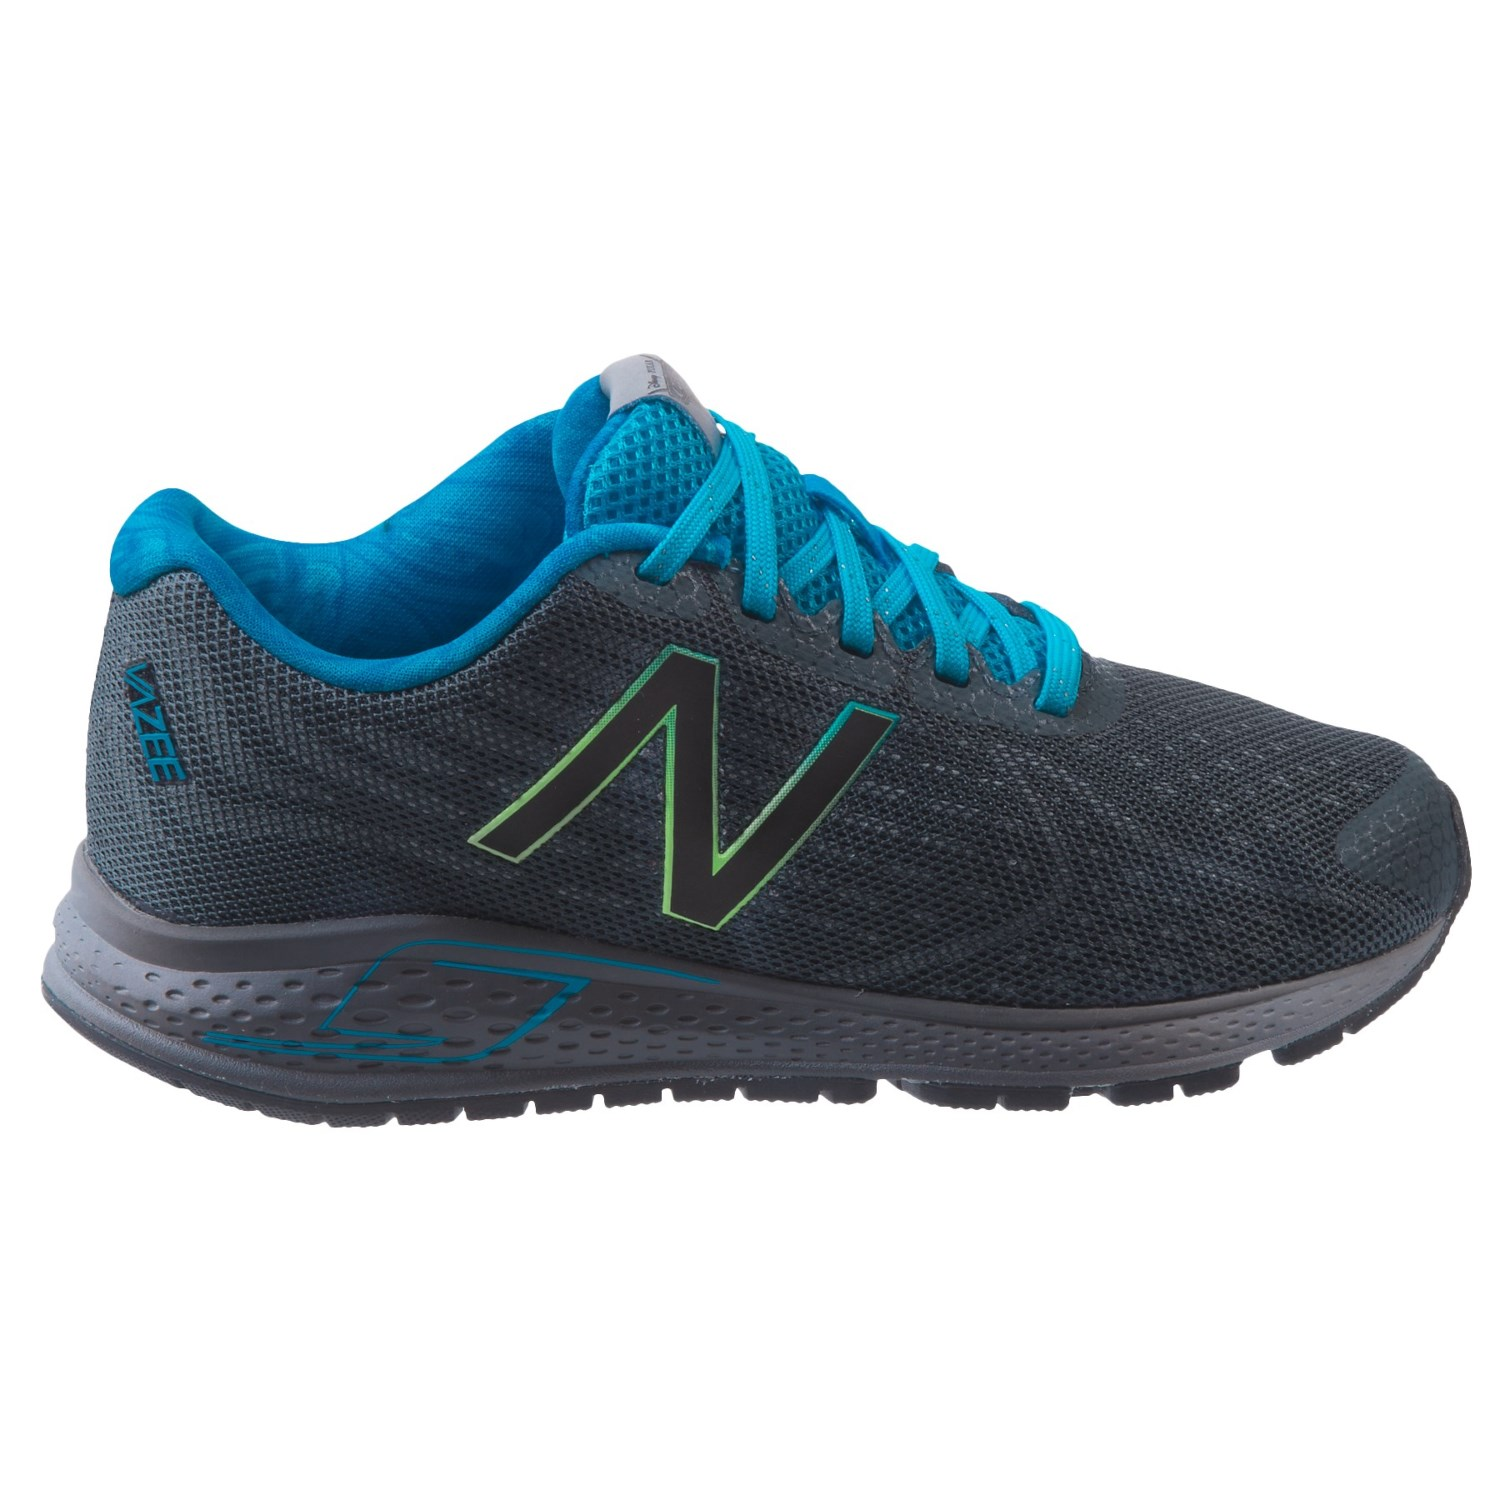 New balance vazee rush v2 mens running shoes black multi online - New Balance Vazee Rush V2 Running Shoes For Little And Big Kids